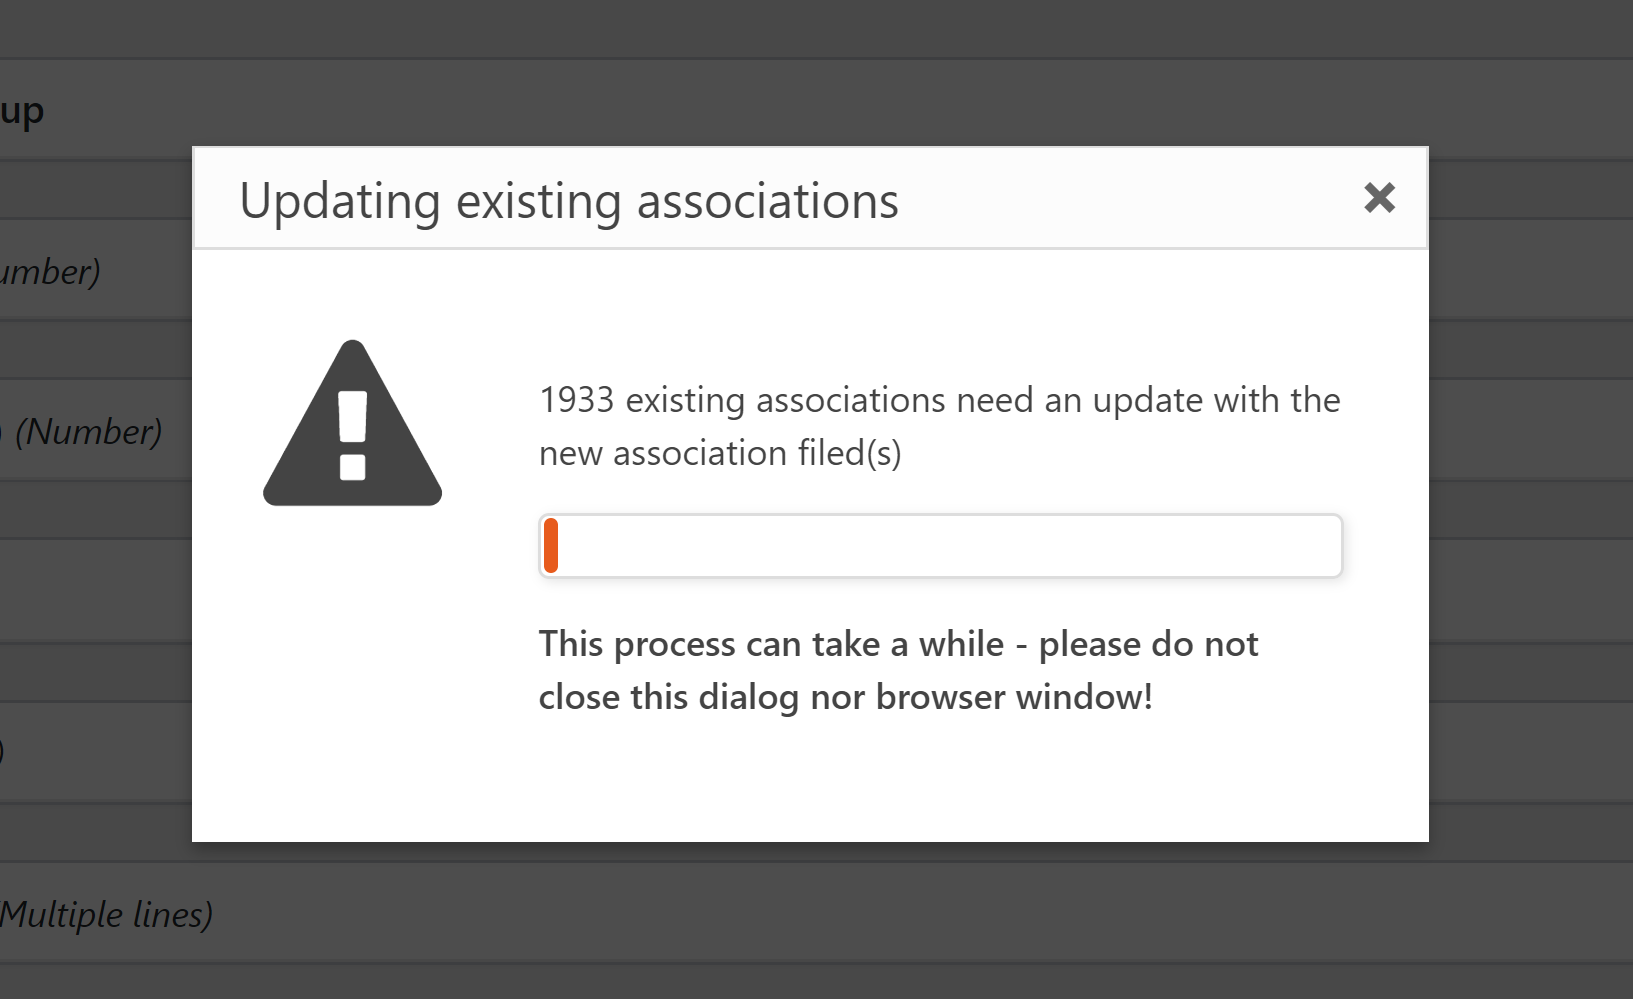 Toolset warning: Updating existing associations